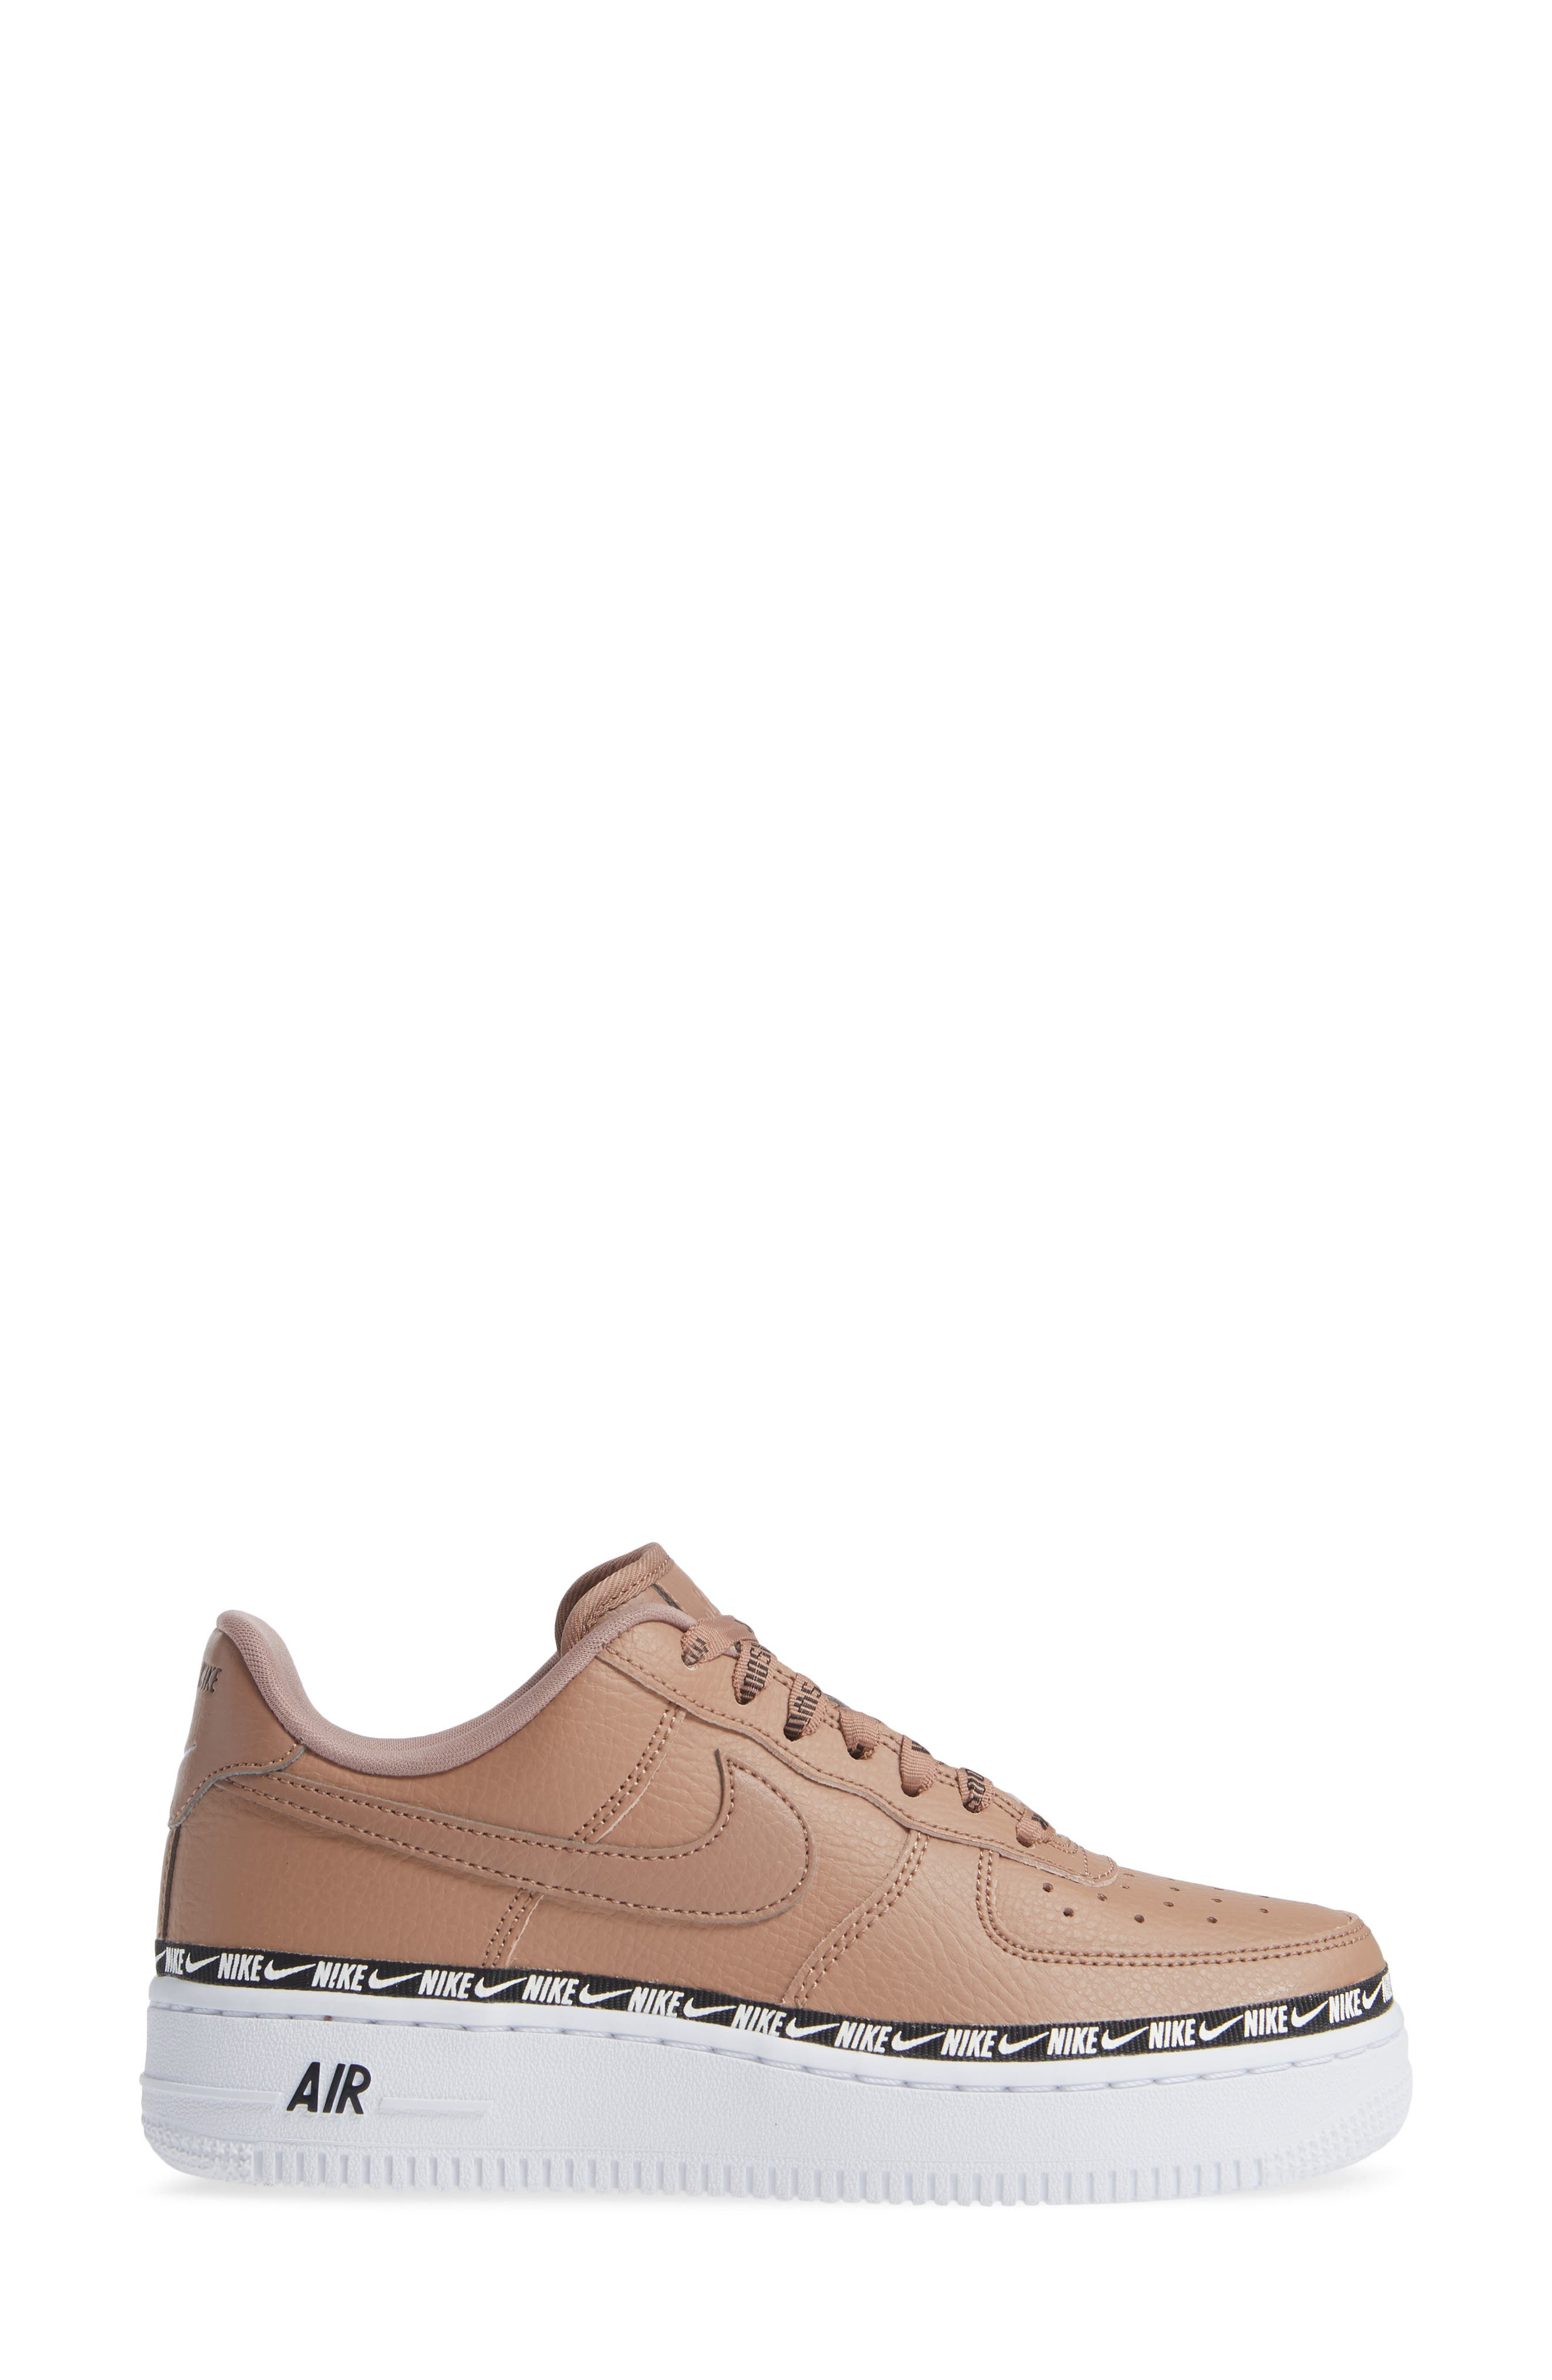 Air Force 1 '07 SE Premium Sneaker,                             Alternate thumbnail 3, color,                             DESERT DUST/ BLACK/ WHITE